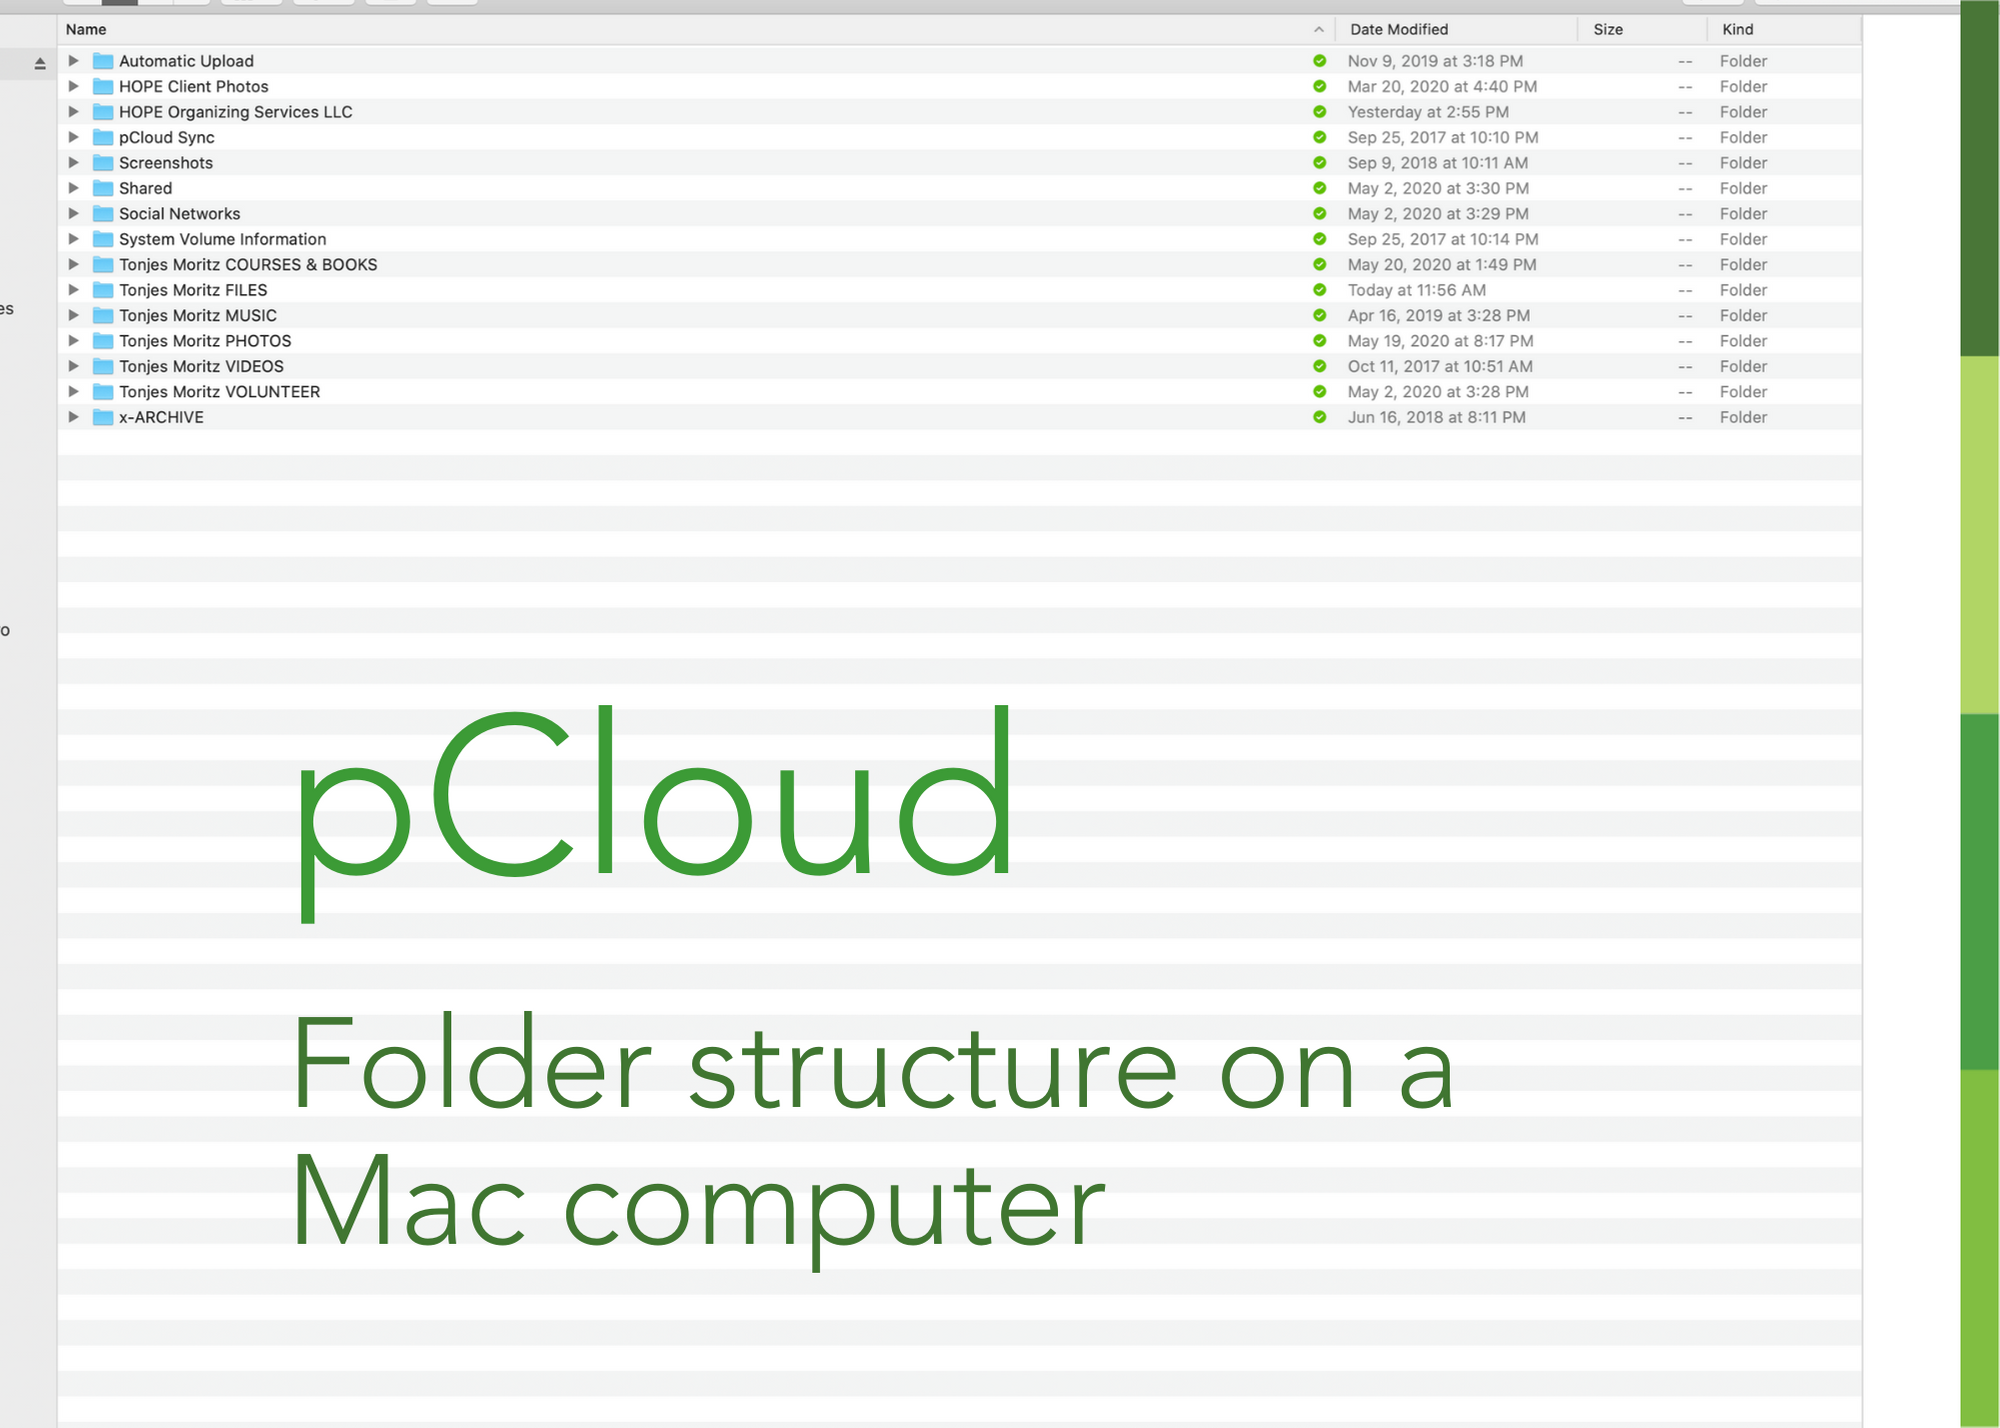 pcloud folders on Mac computer